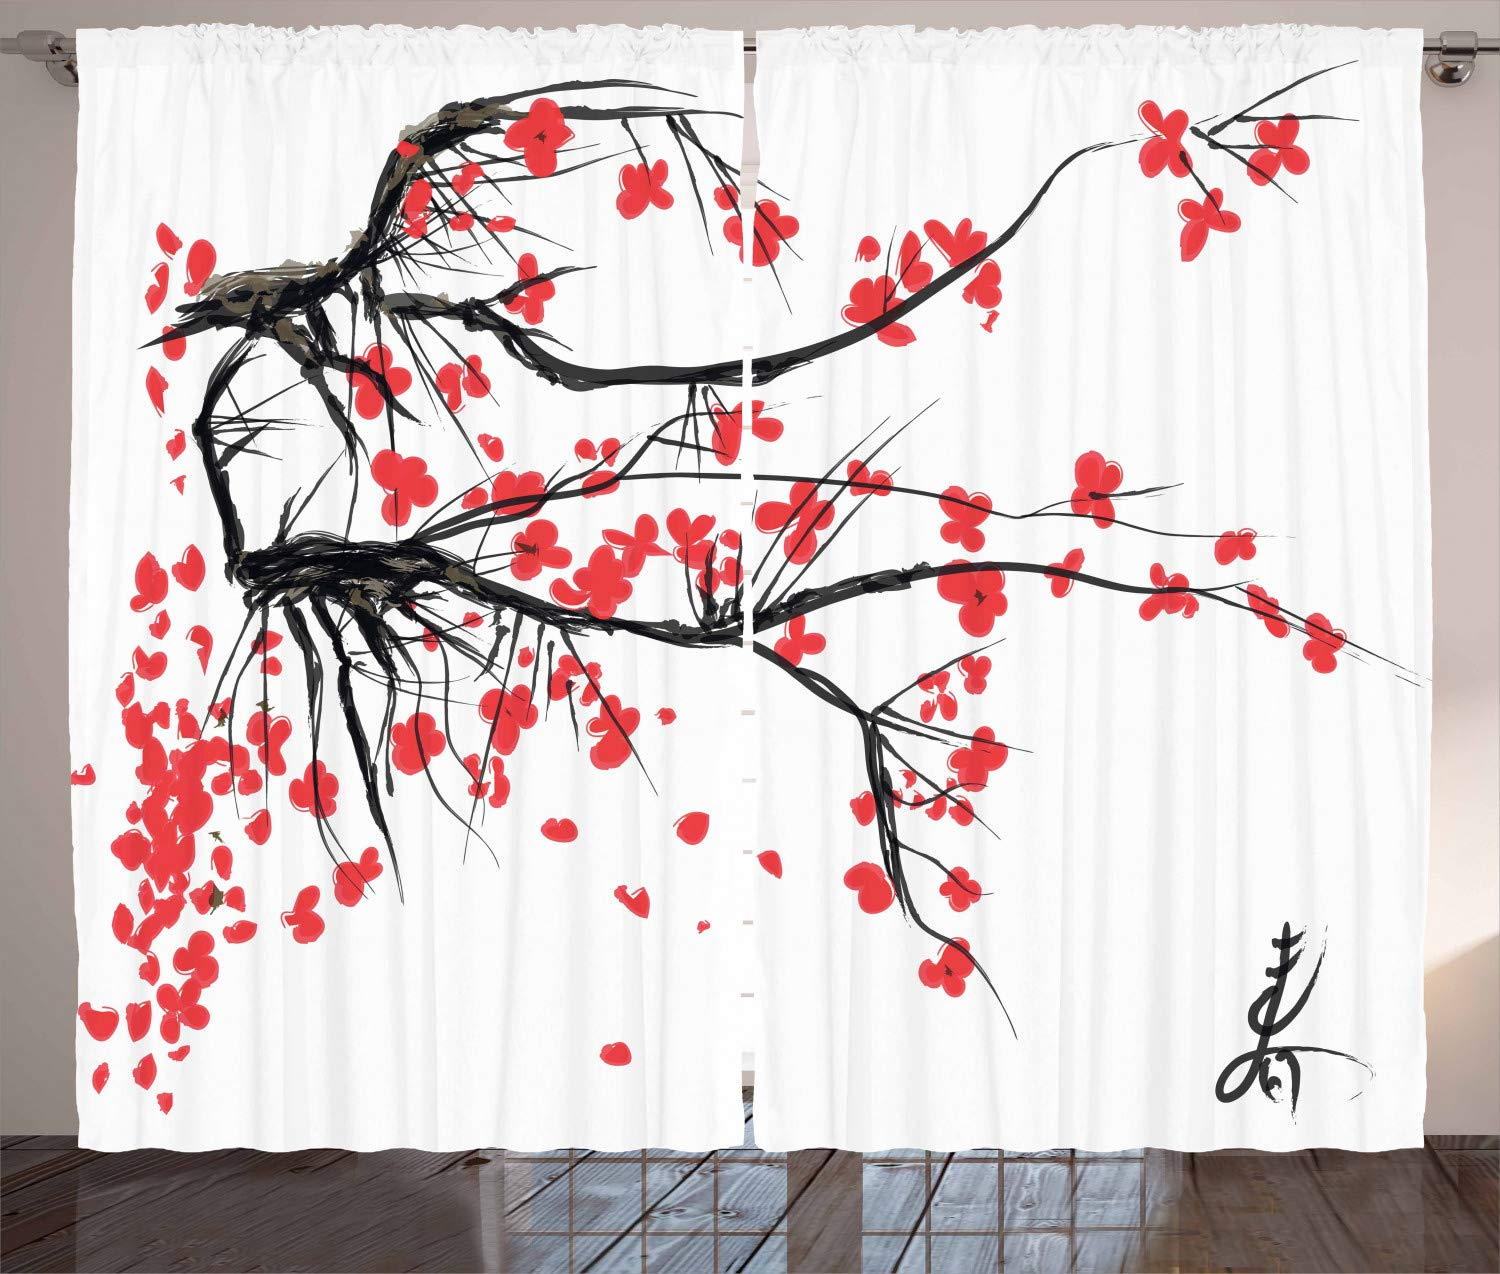 Ambesonne Nature Curtains, Sakura Blossom Japanese Cherry Tree Garden Summertime Vintage Cultural Print, Living Room Bedroom Window Drapes 2 Panel Set, 108 W X 63 L Inches, Grey and Vermilion